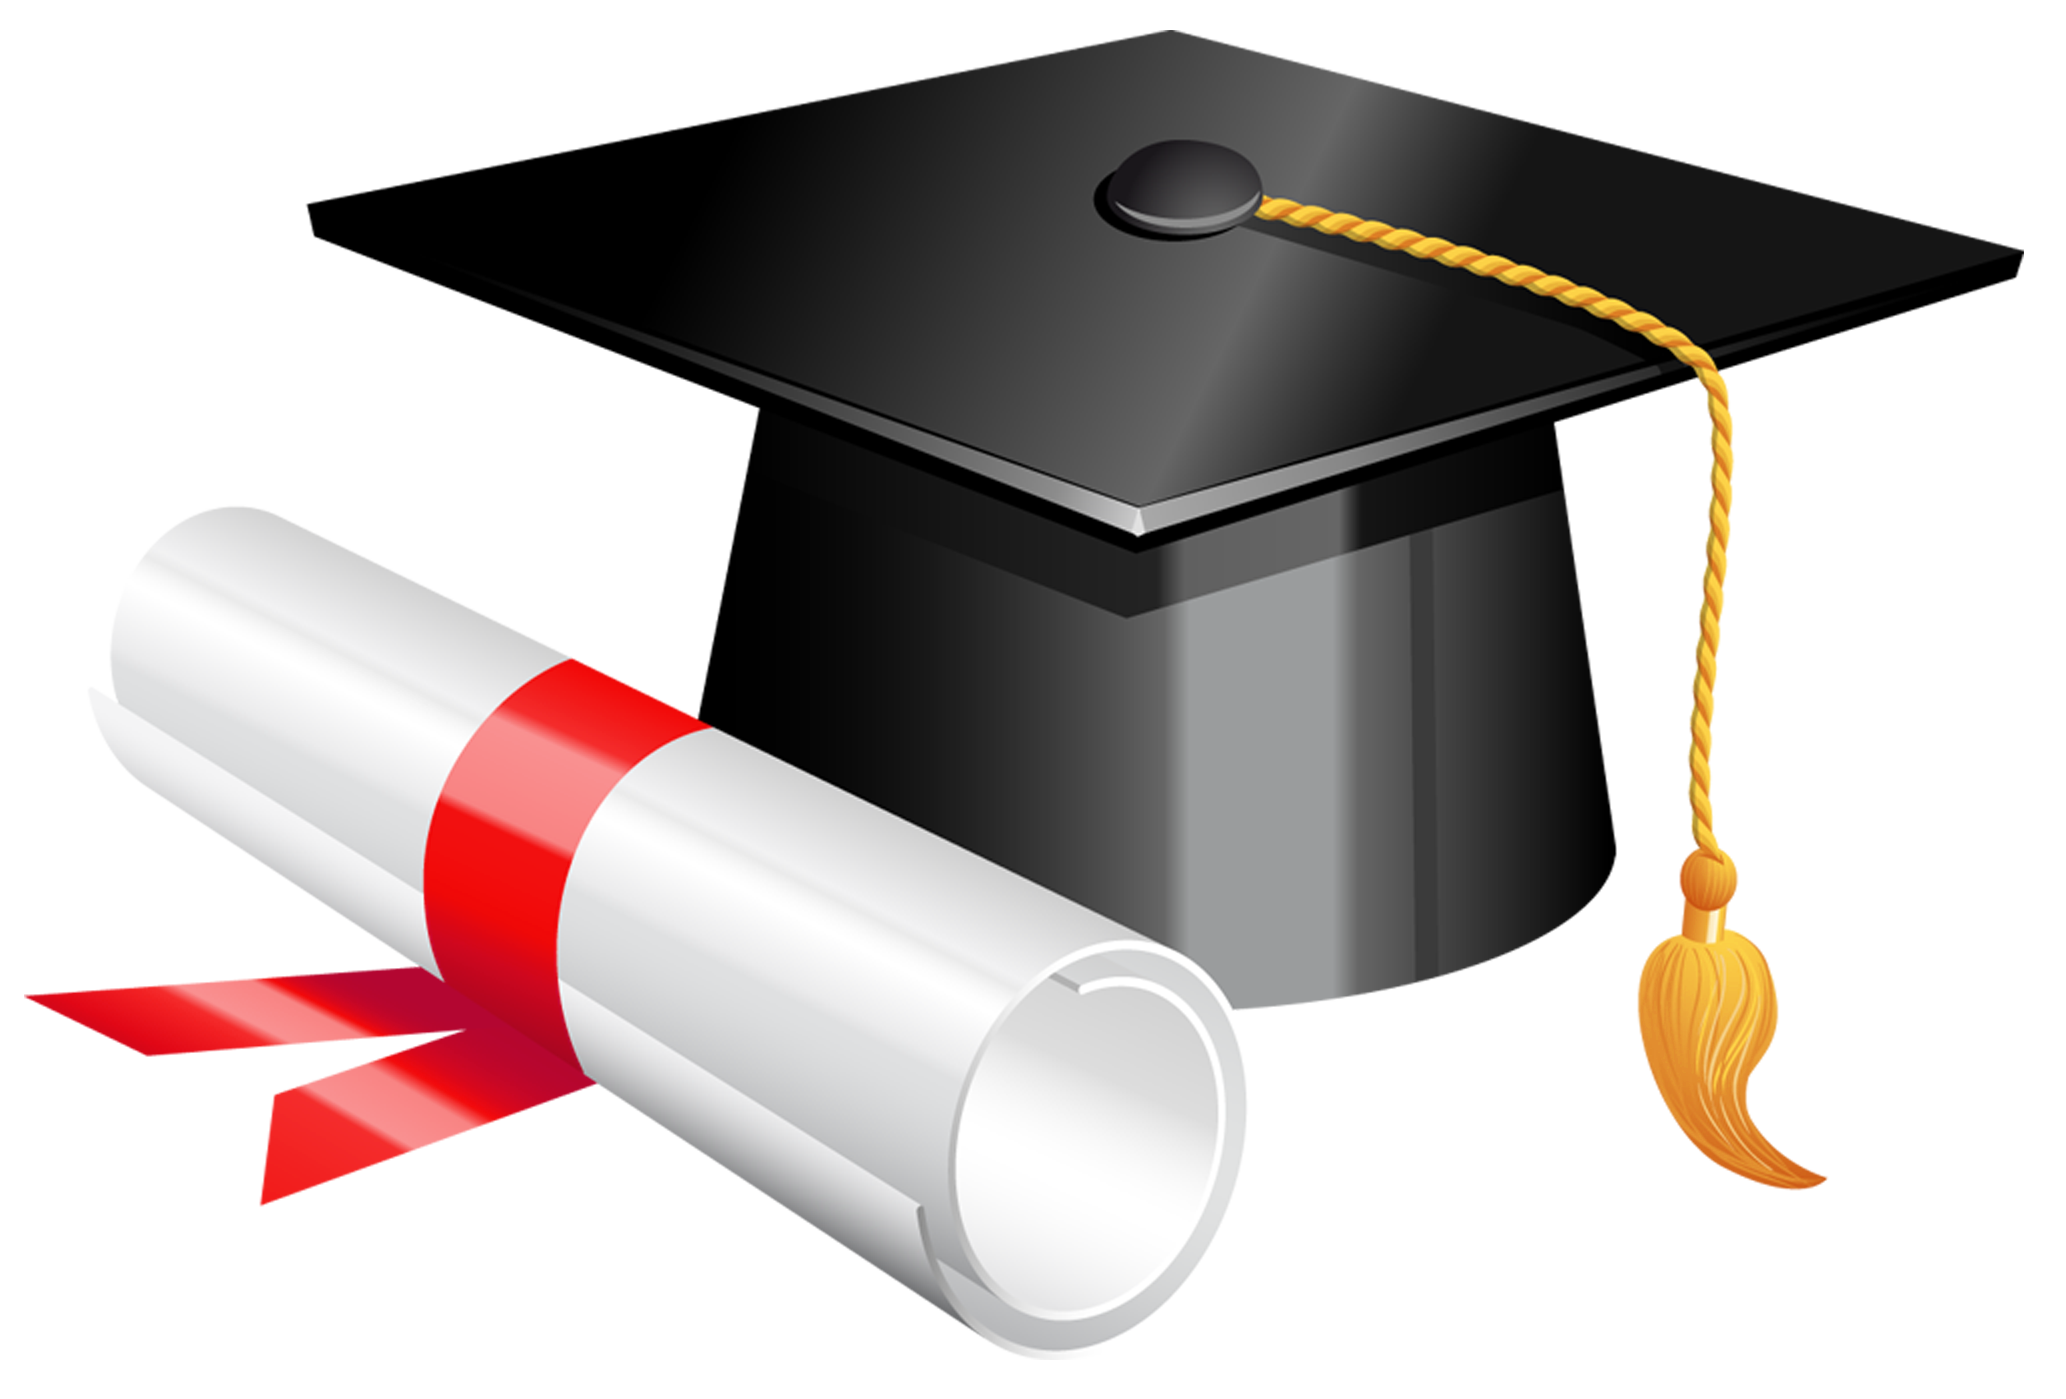 Graduation ceremony Download School Clip art.